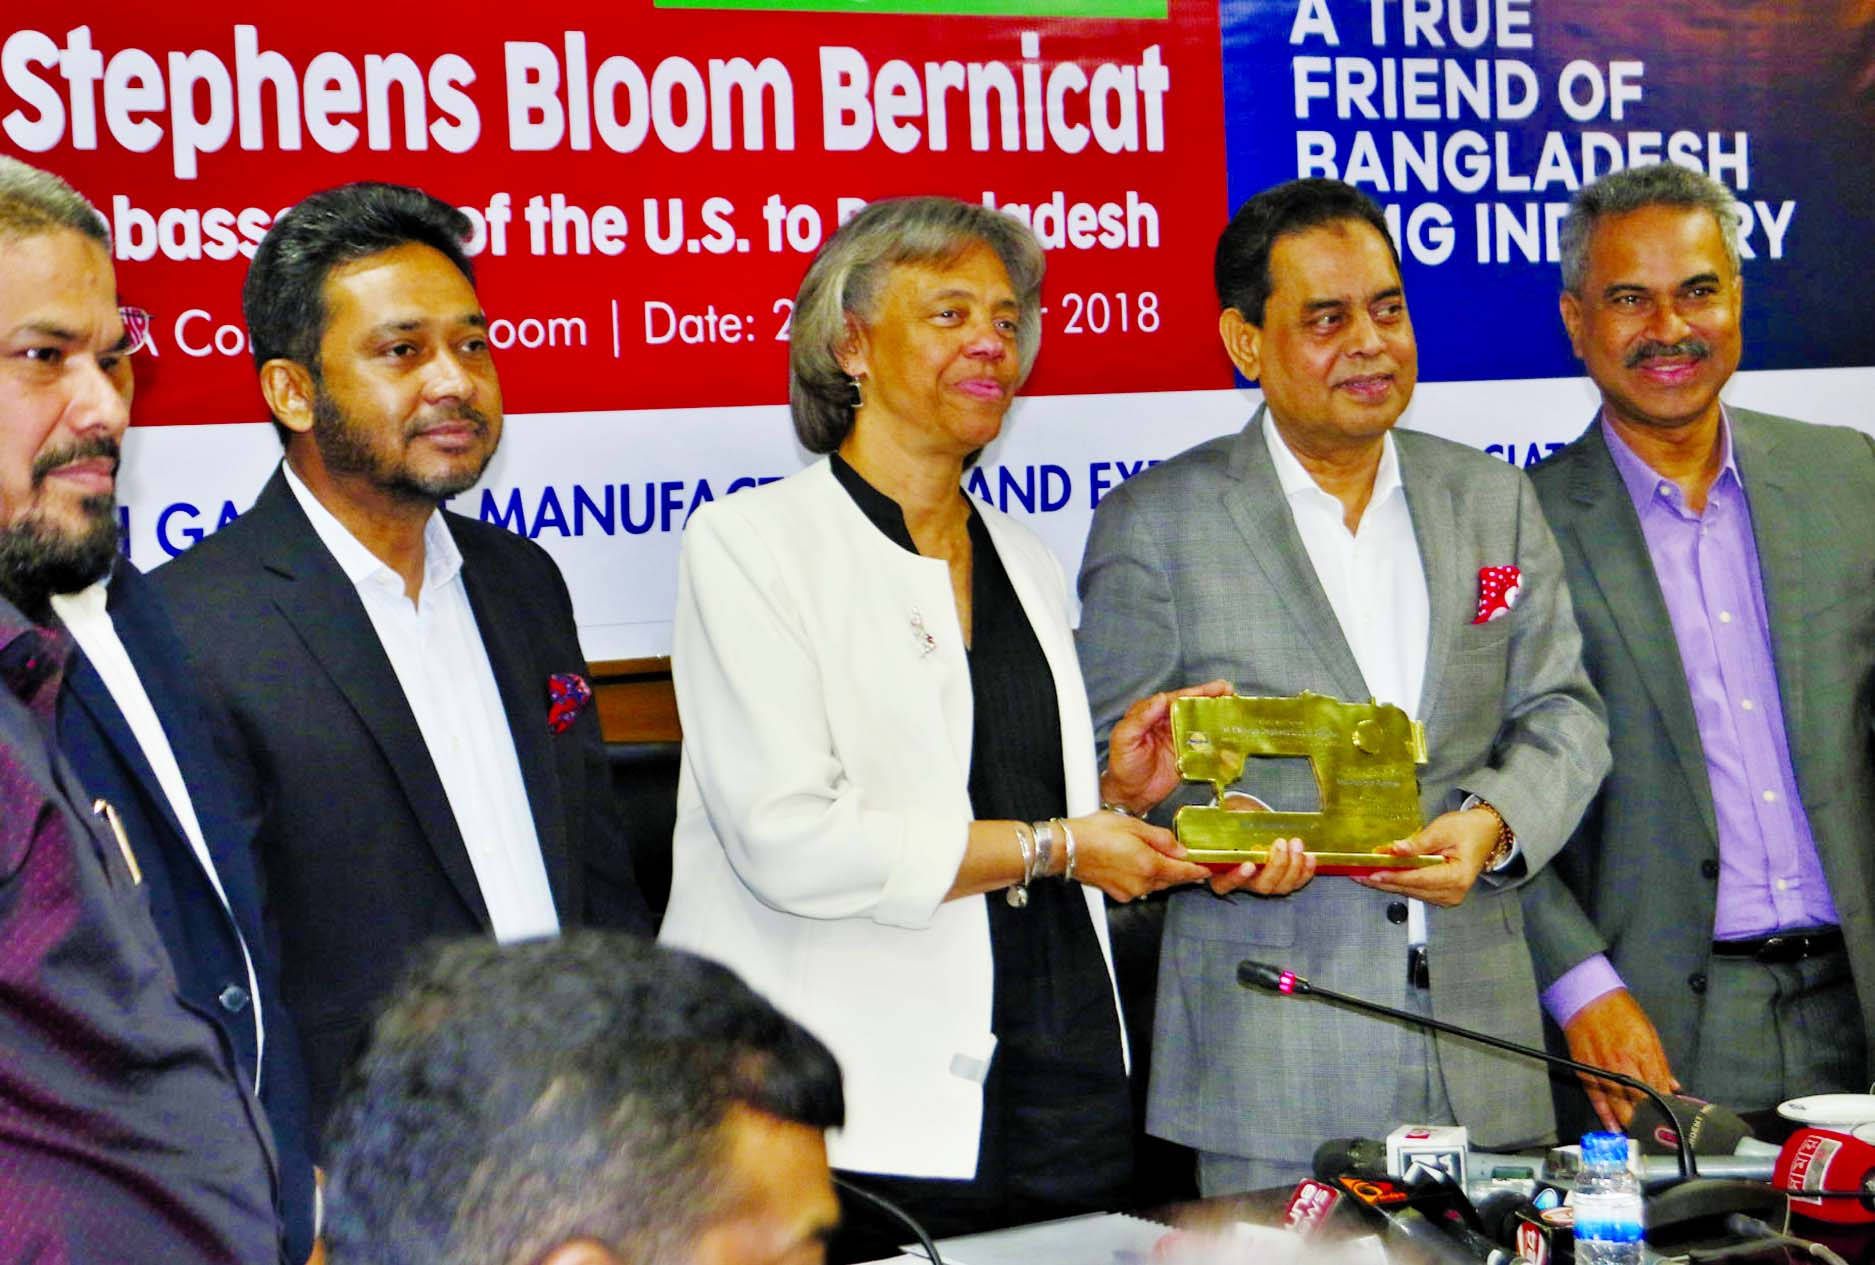 BD has potential to achieve more: Bernicat